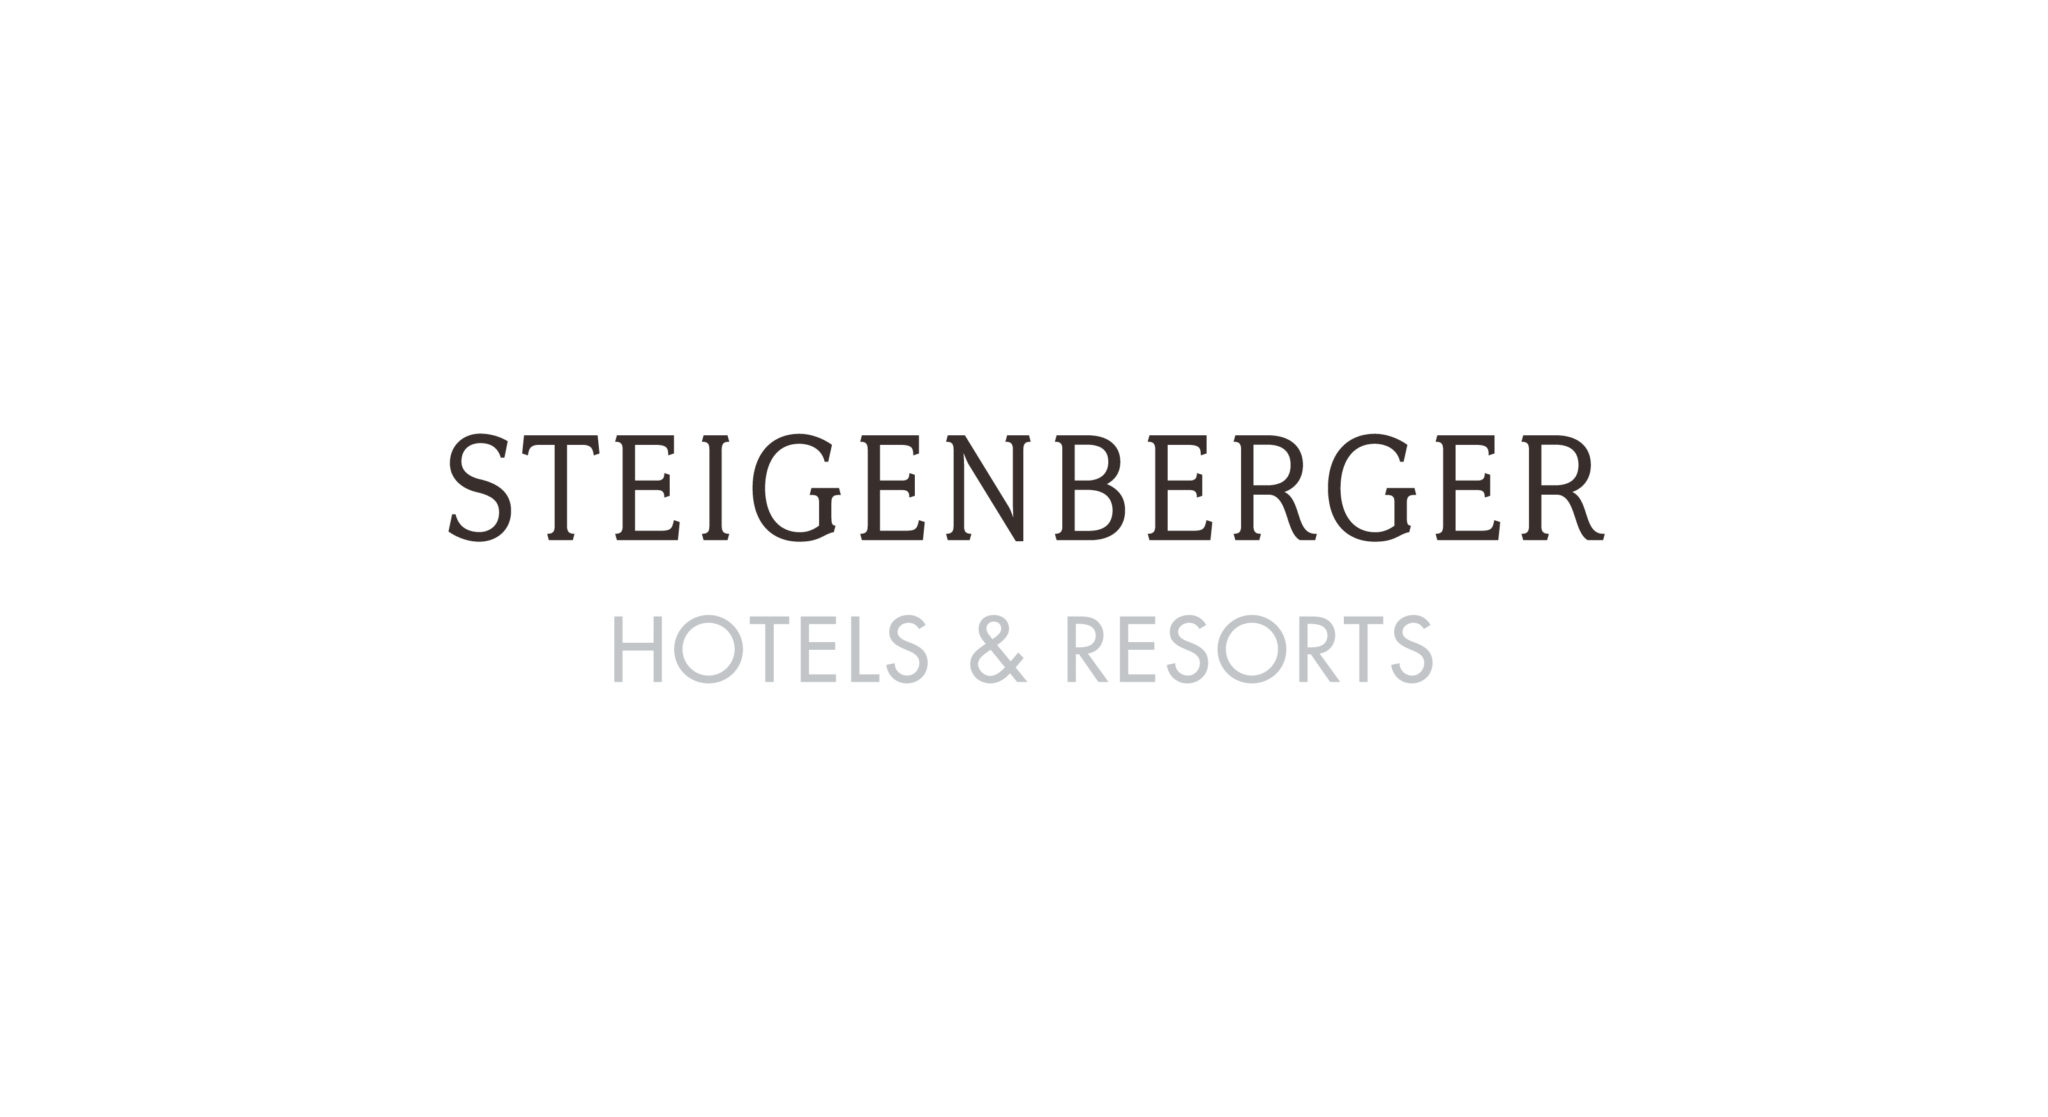 QUO Partners with Steigenberger in Brand Re-Launch